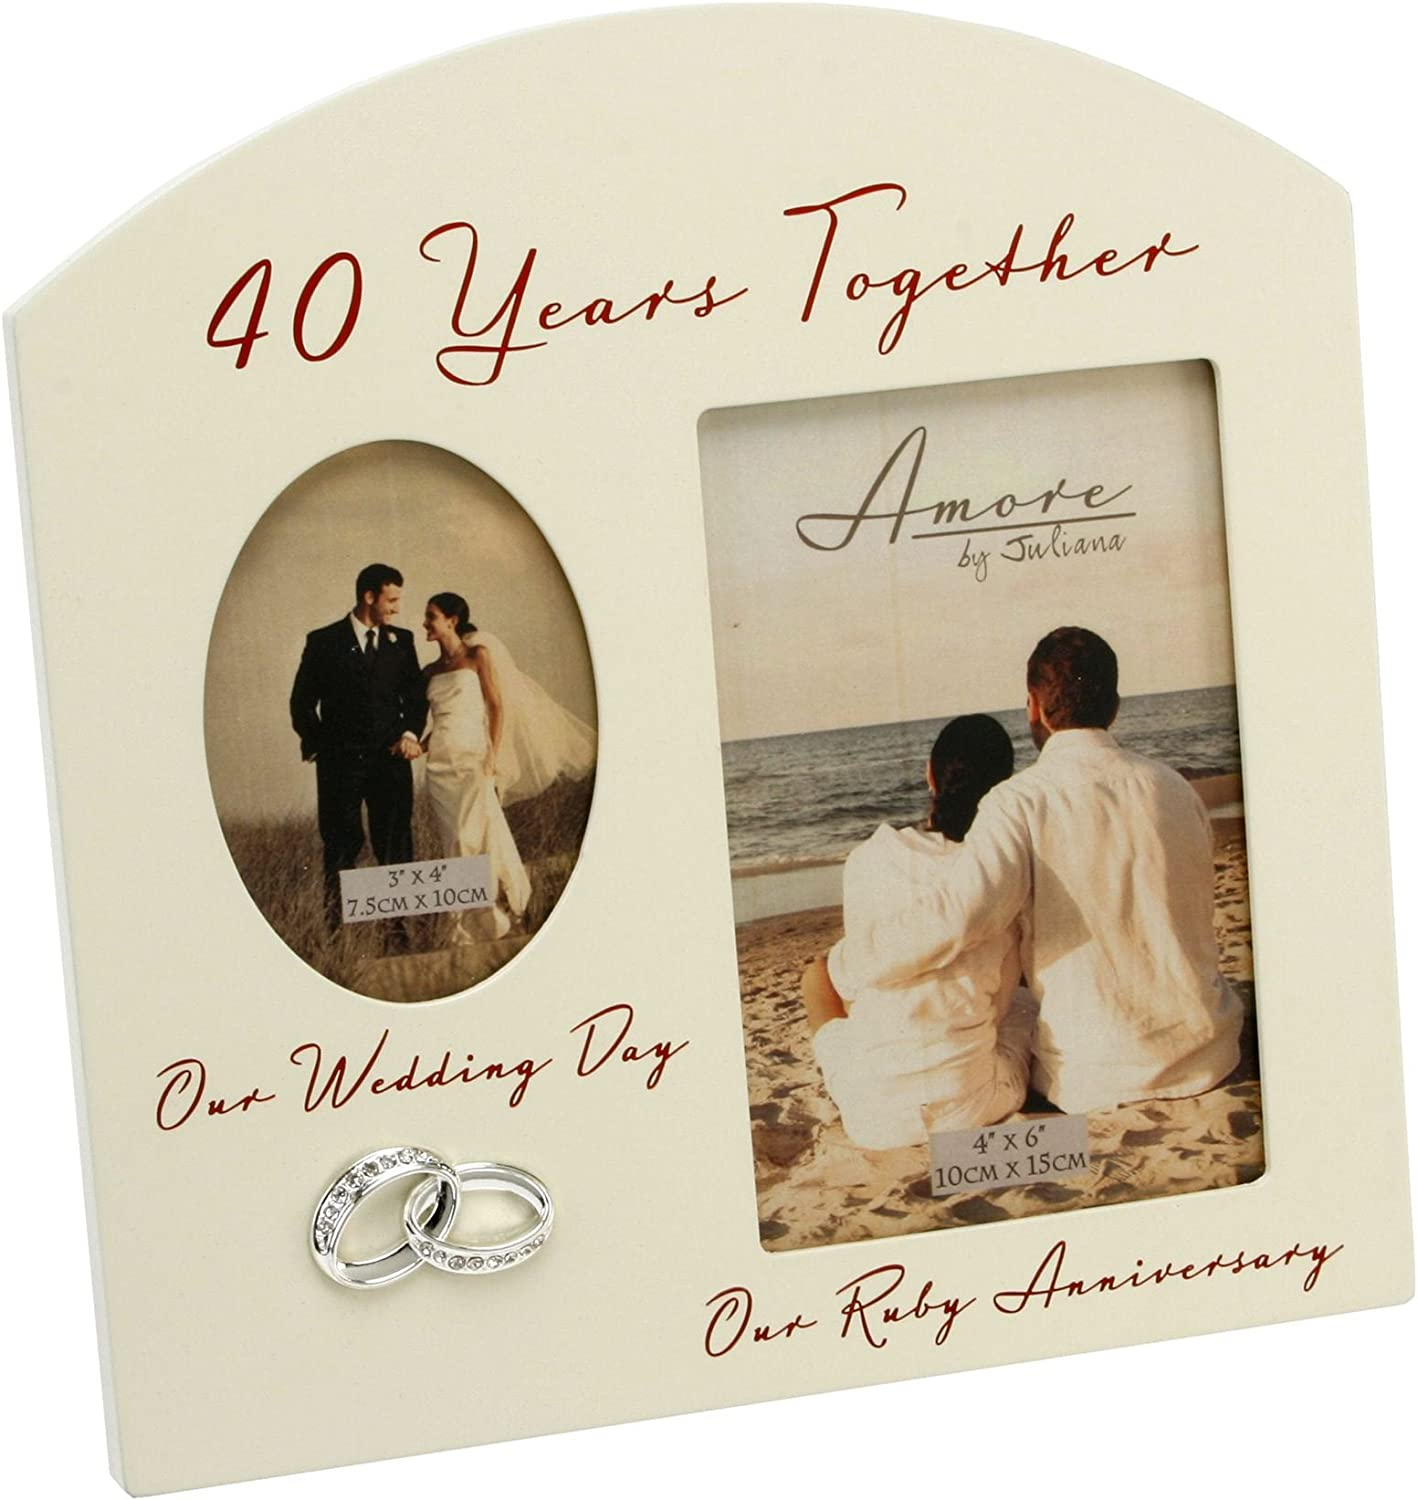 40th Anniversary Tree Then and Now by Shudehill giftware